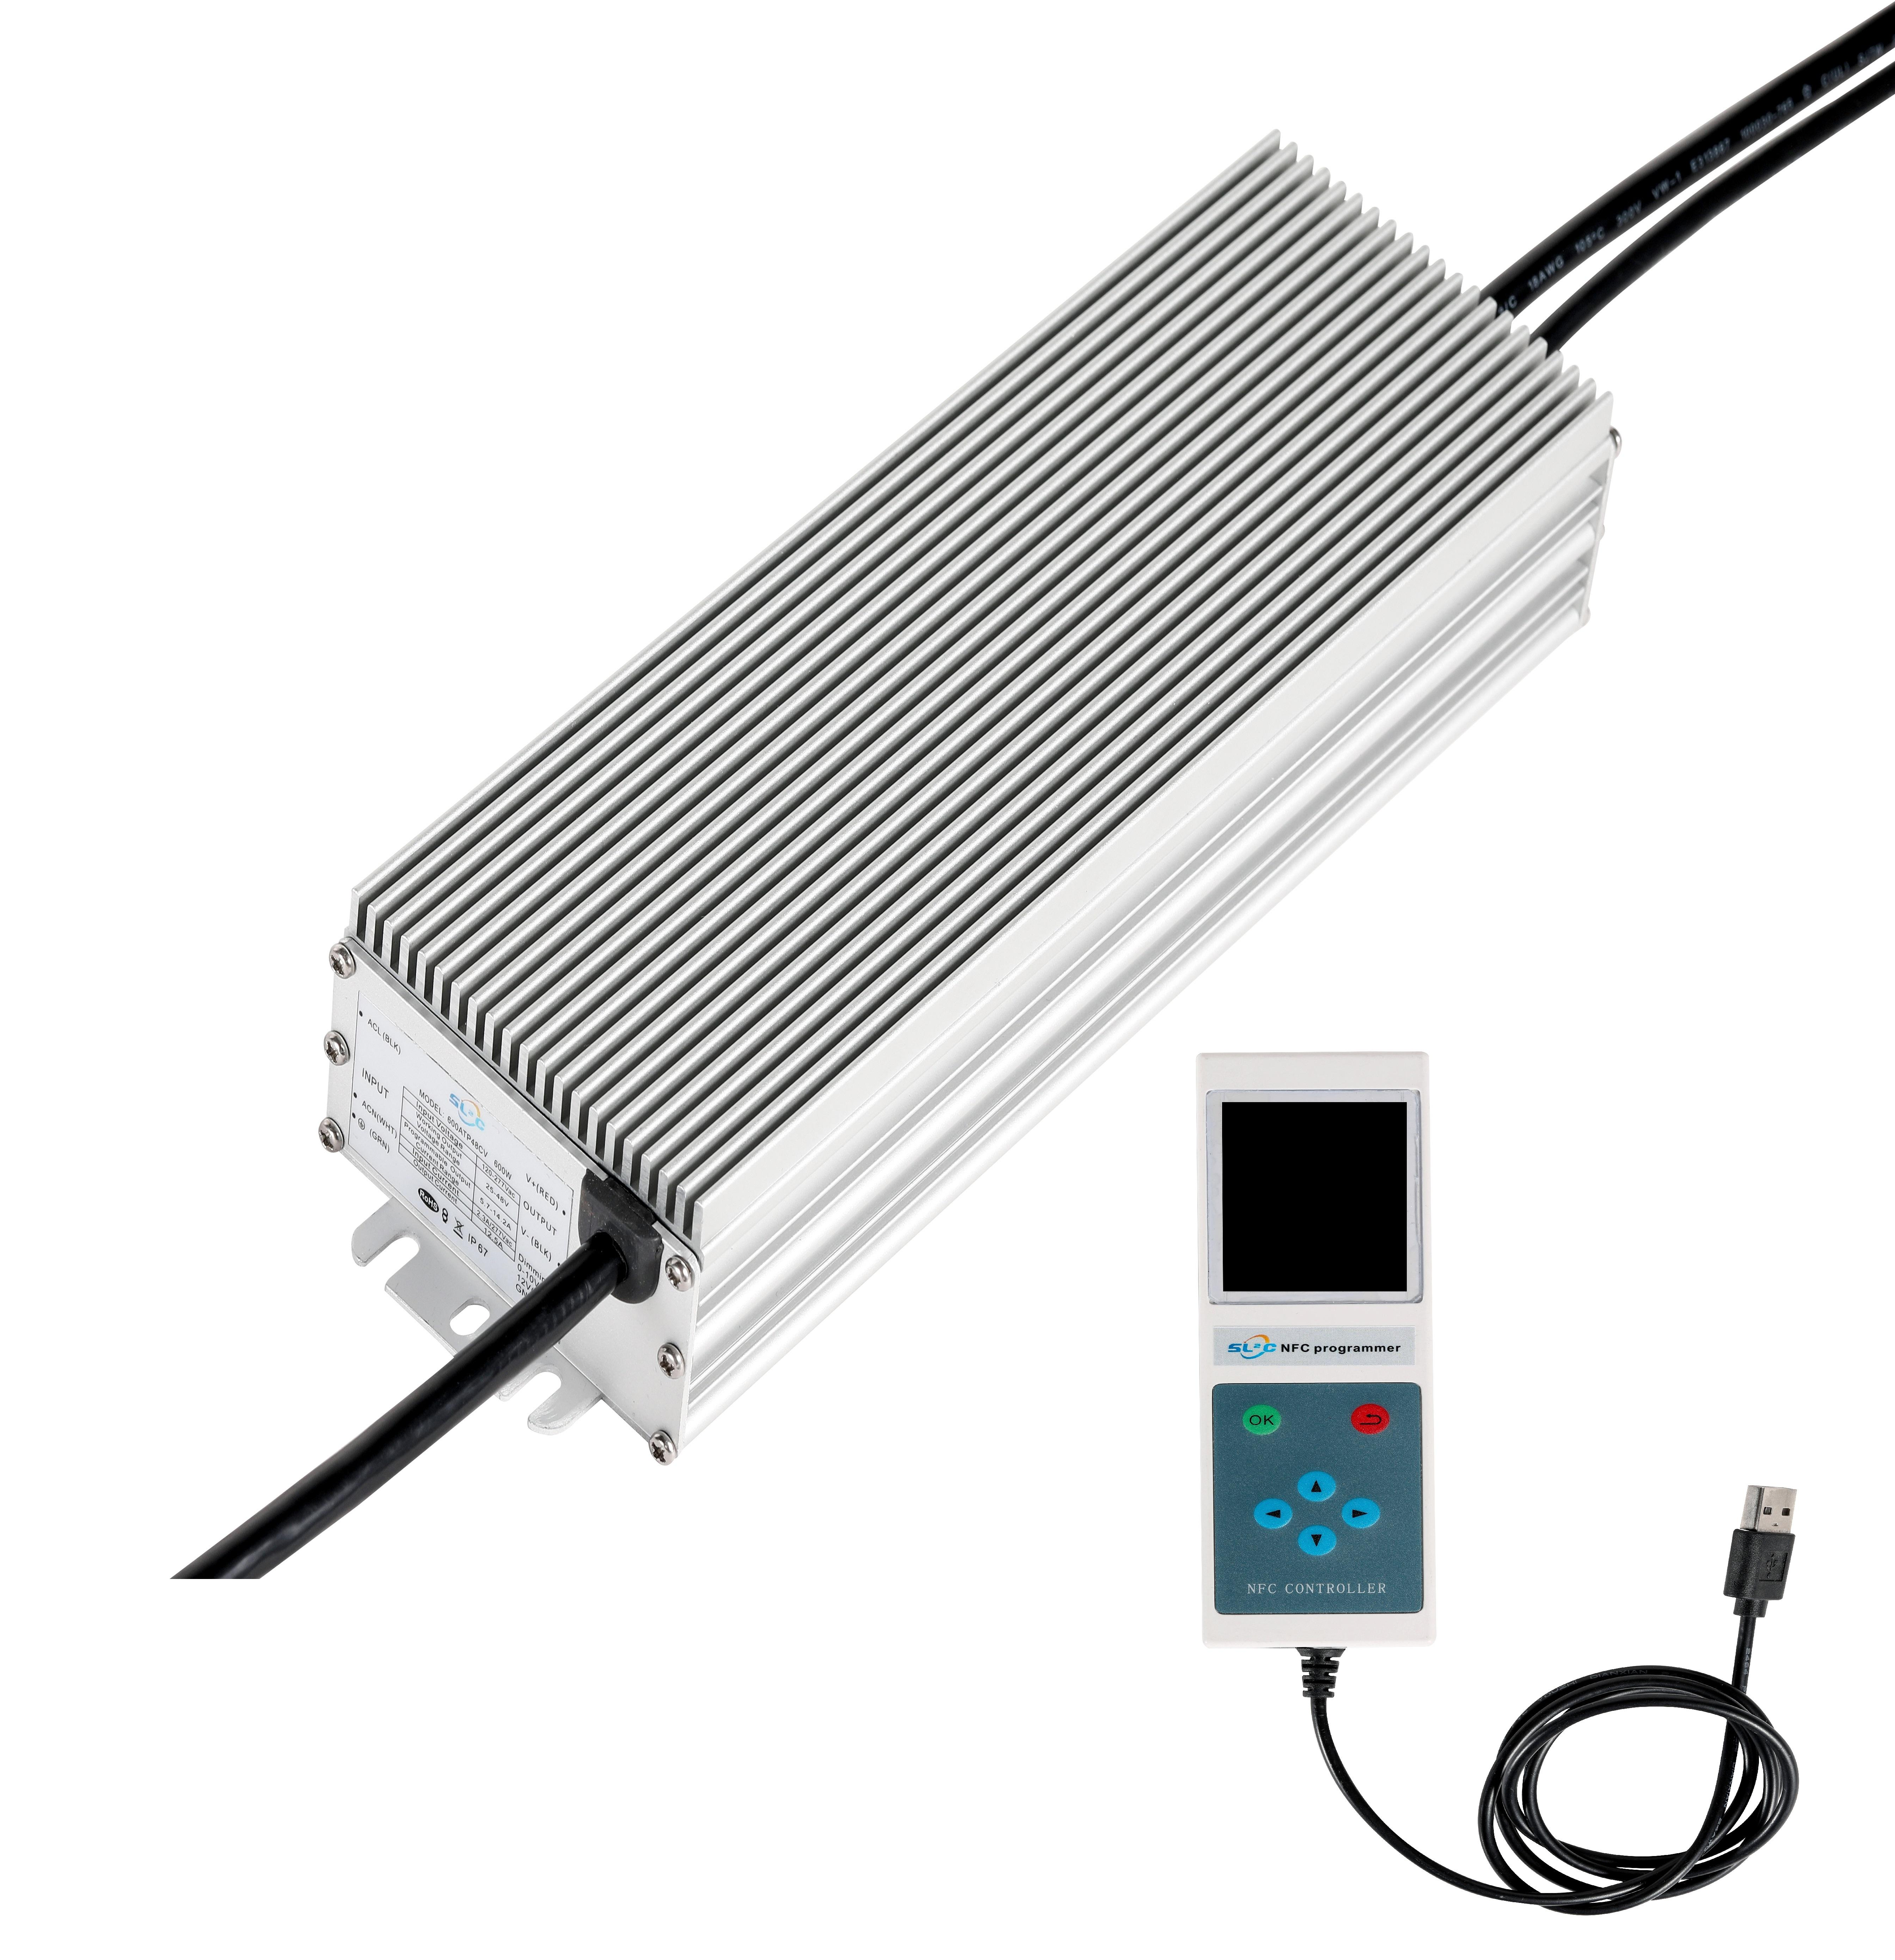 12v Driver 12V 400W 500W 600W 680W Grow Lights Used Programmable LED Driver Powersupply 400ATP36CV 18-36VDC HLG